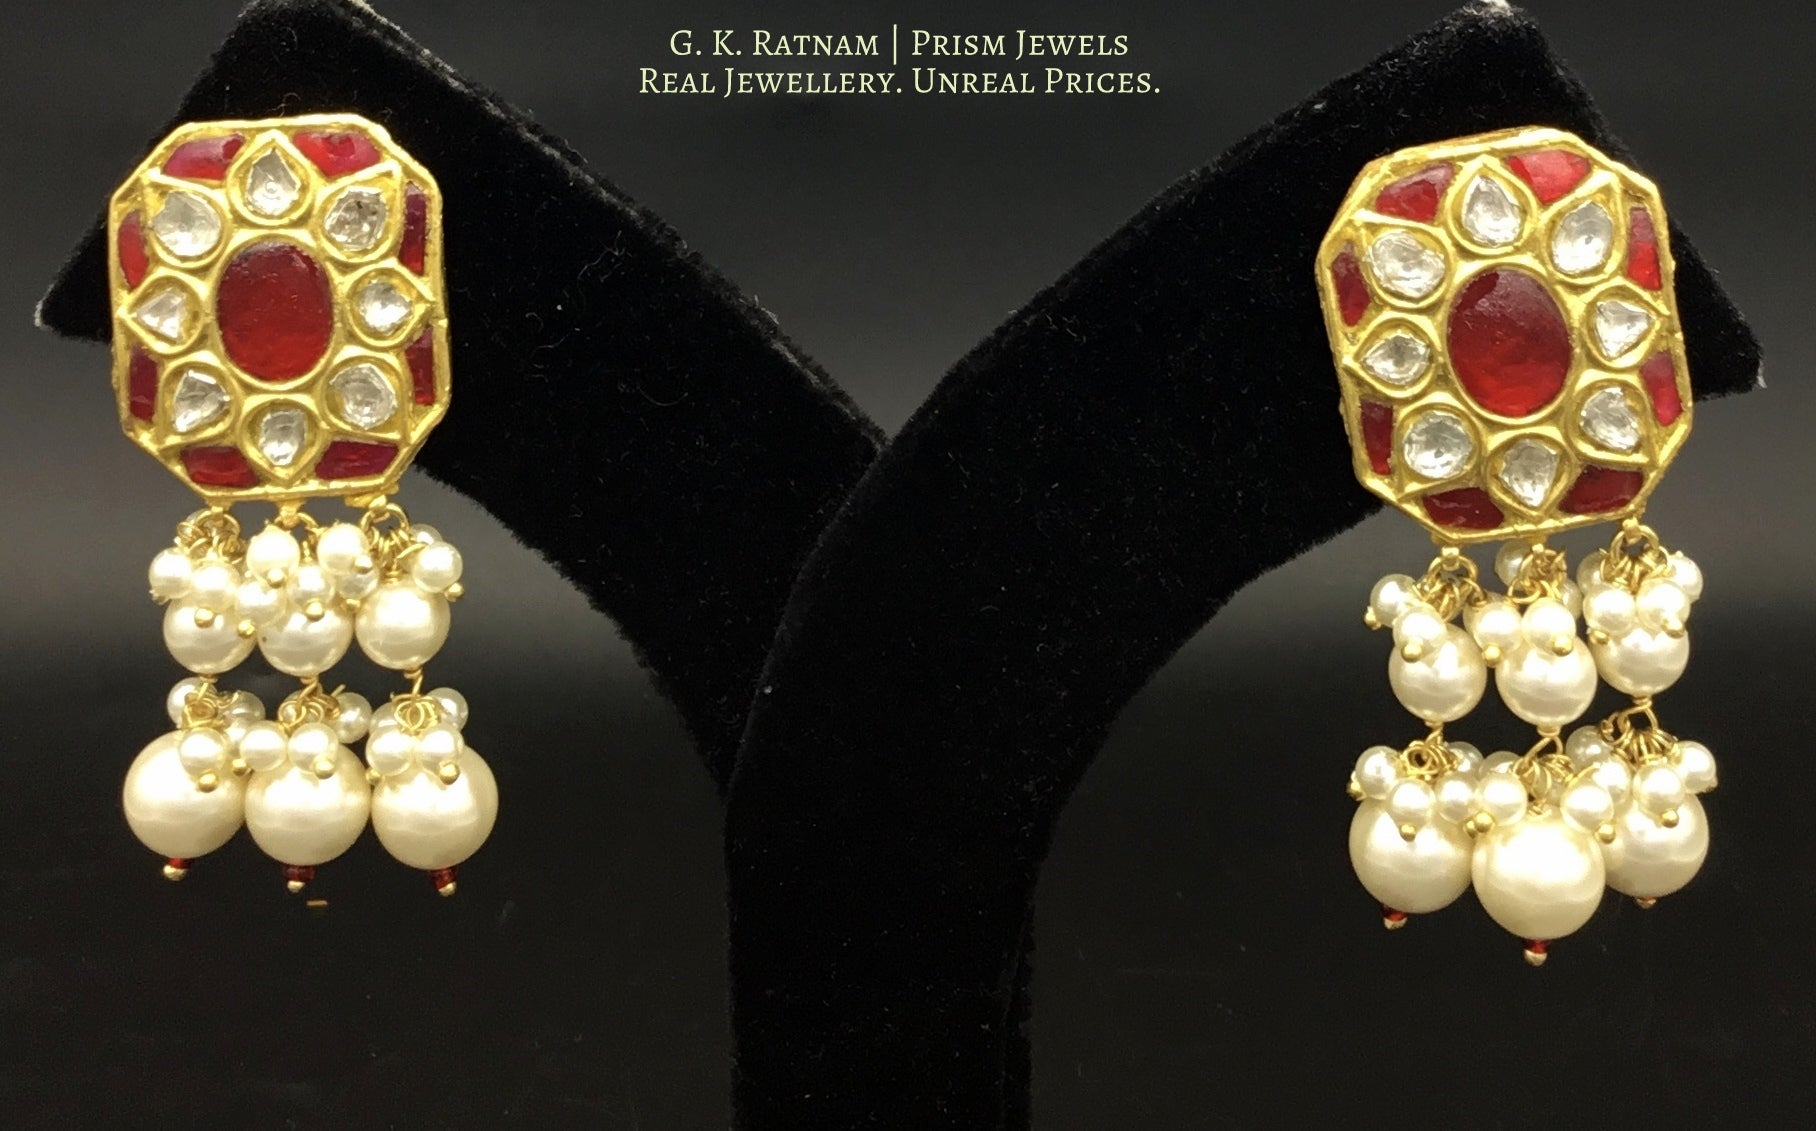 23k Gold and Diamond Polki Ruby Hybrid Pendant Set with tiny chid pearl bunches - gold diamond polki kundan meena jadau jewellery